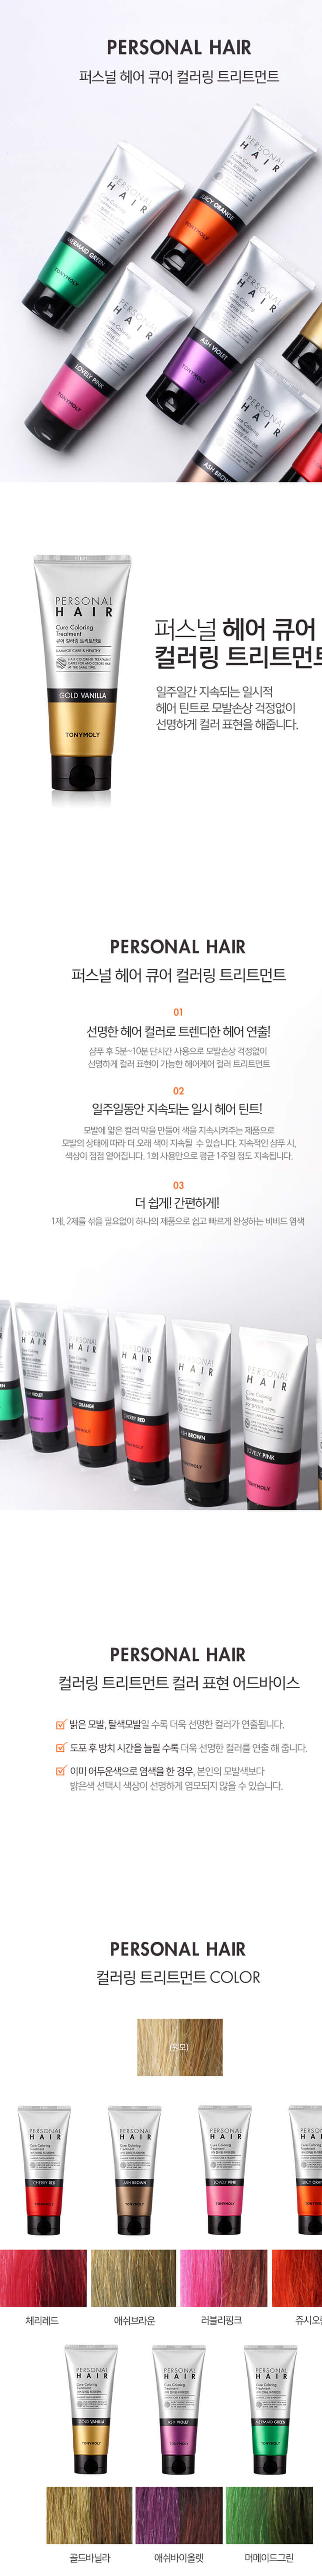 TONY MOLY Personal Hair Care Treatment [Lovely Pink]